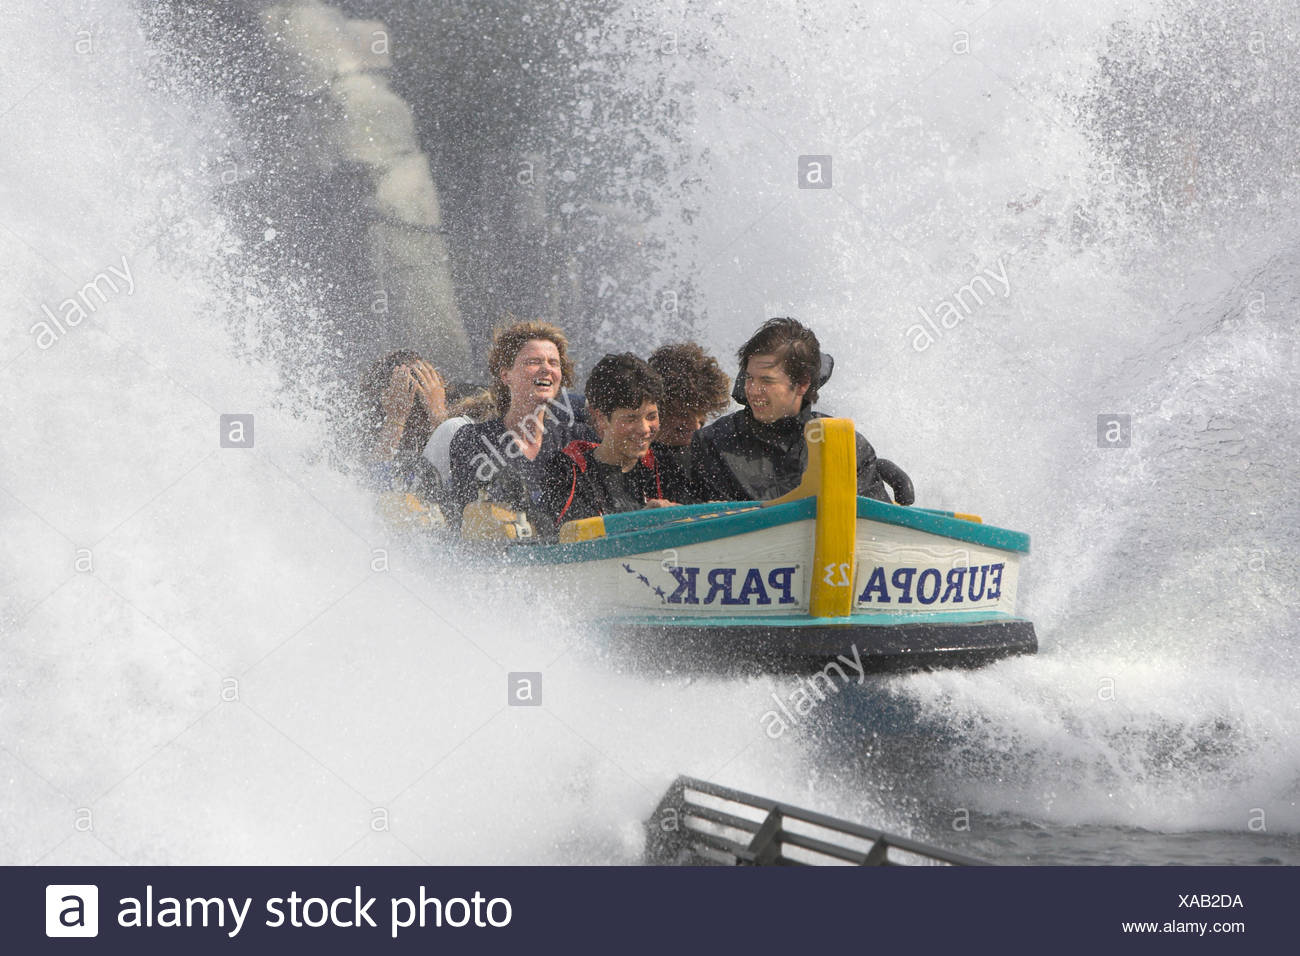 Water roller coaster poseidon, European park Rust, Bade-Wuerttemberg, Germany. - Stock Image